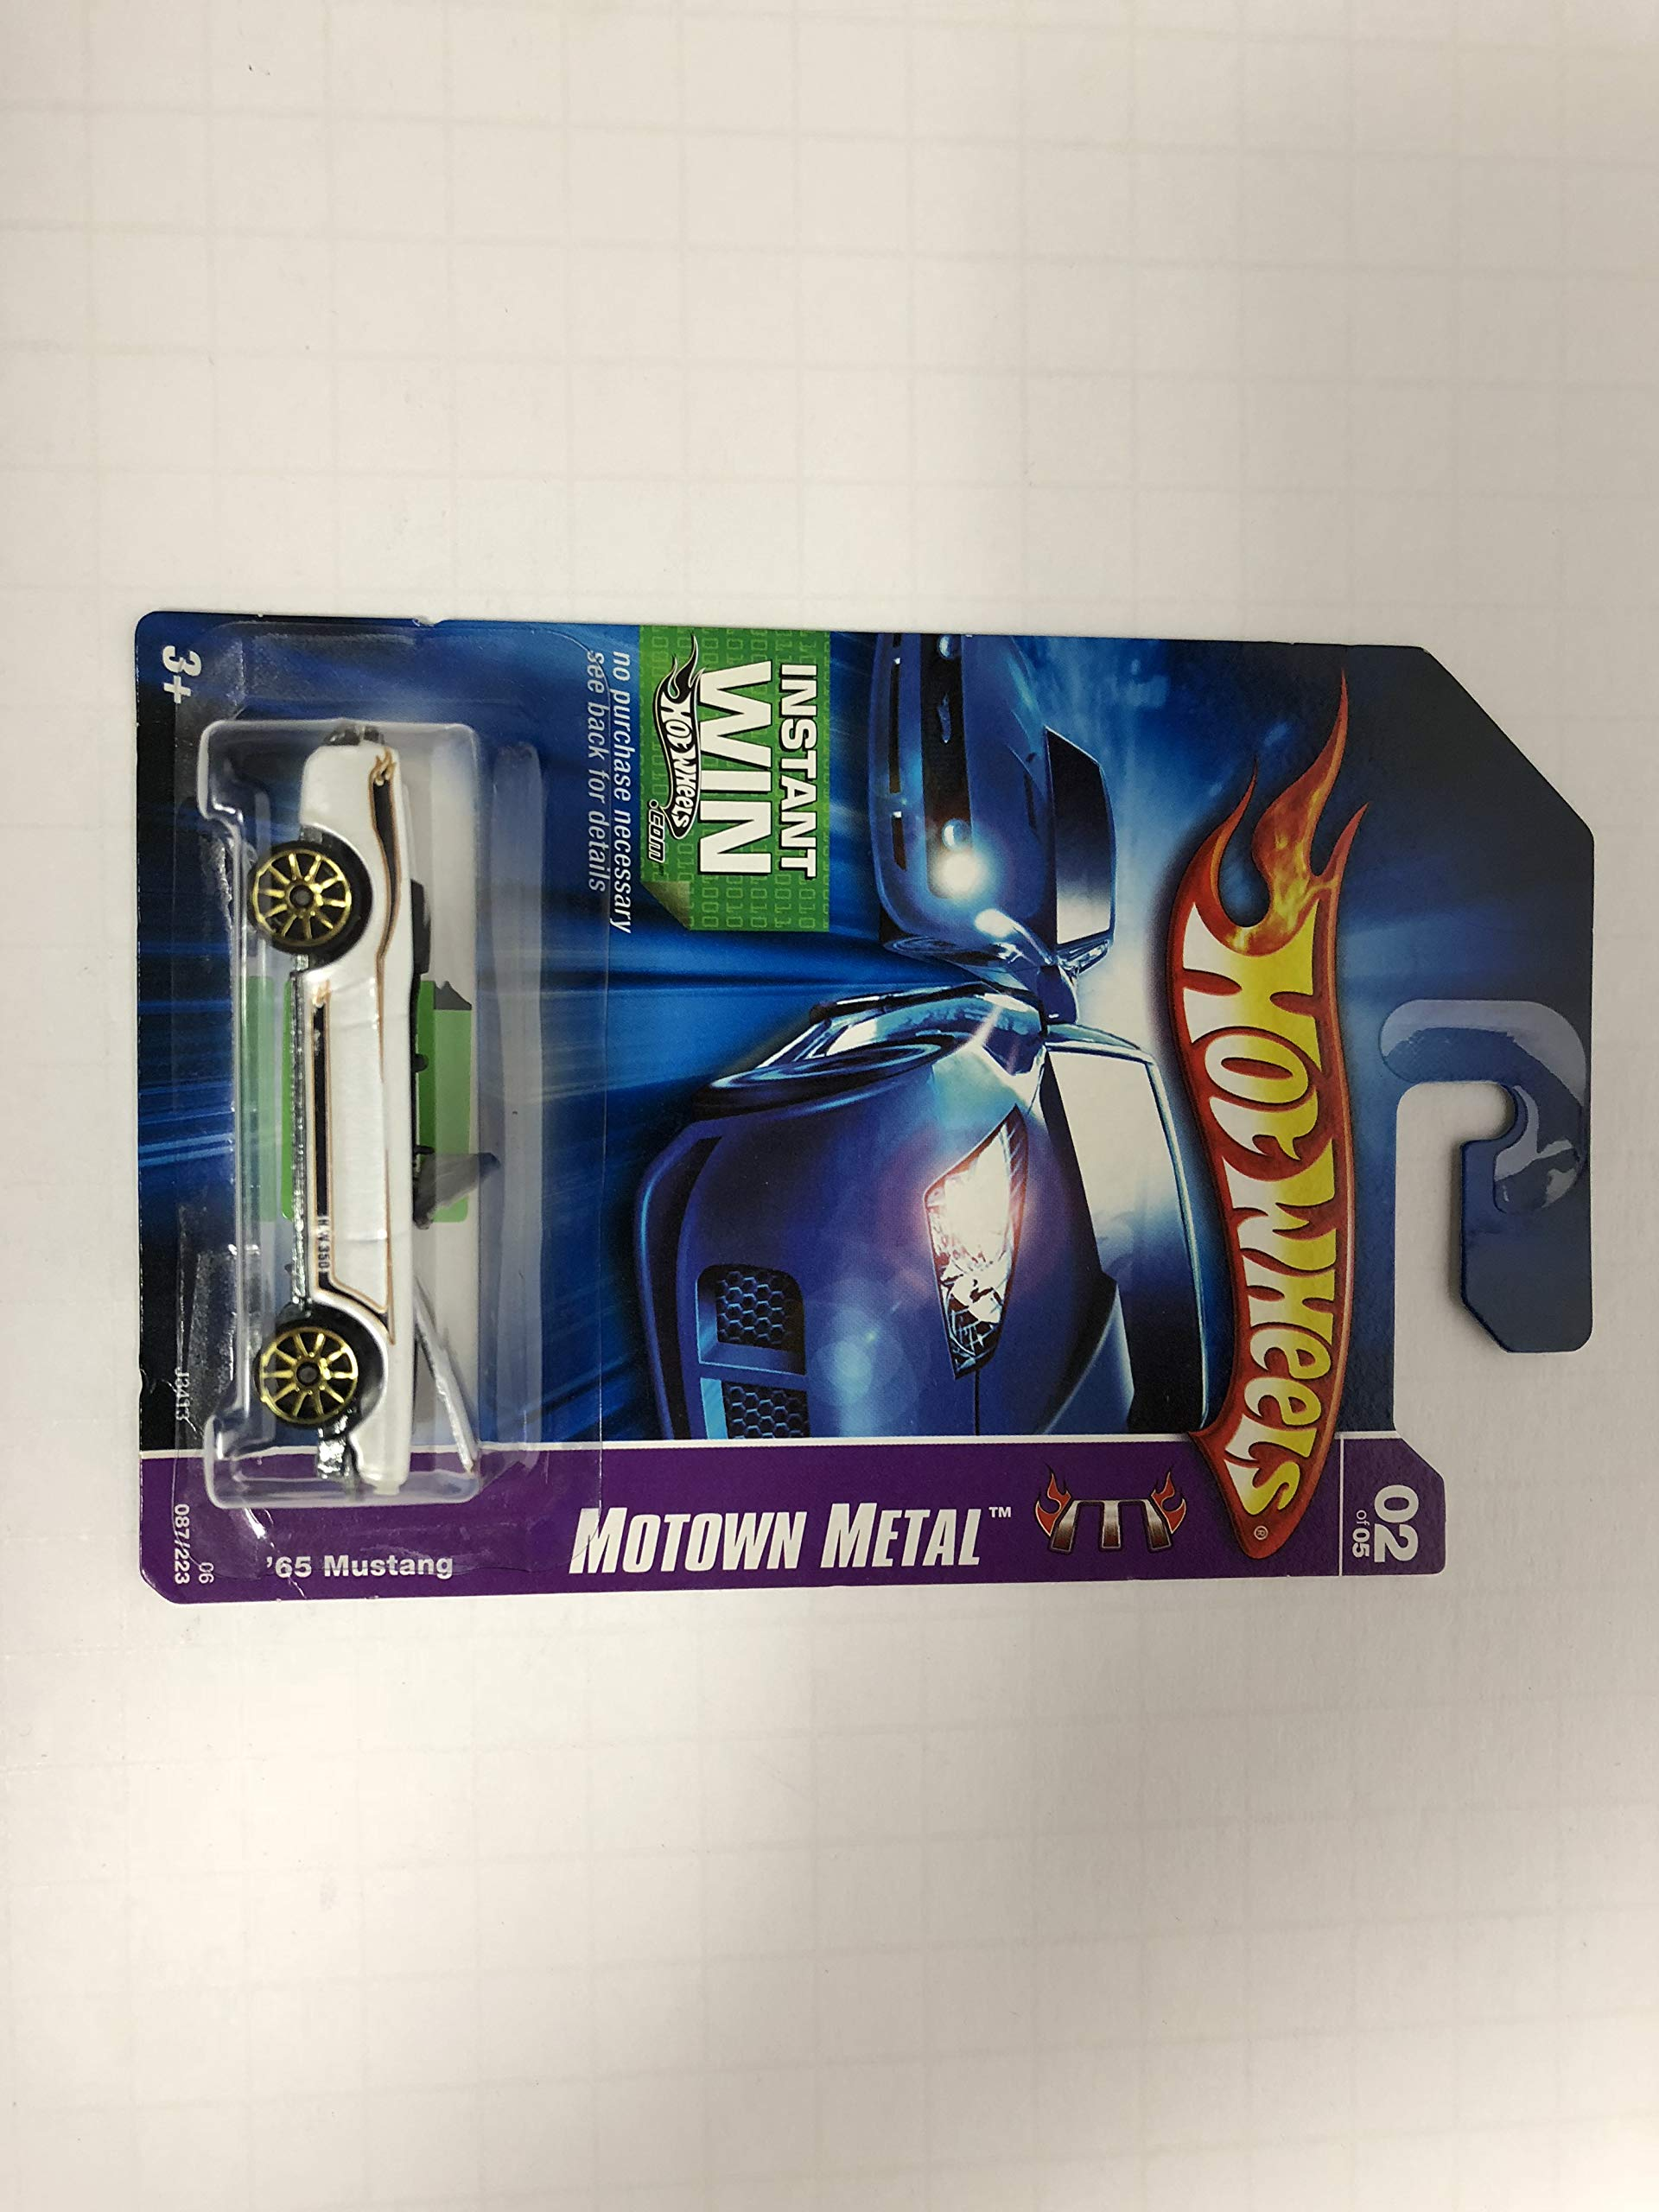 '65 Mustang Motown Metal No. 087 Hot Wheels 2006 1/64 scale diecast car